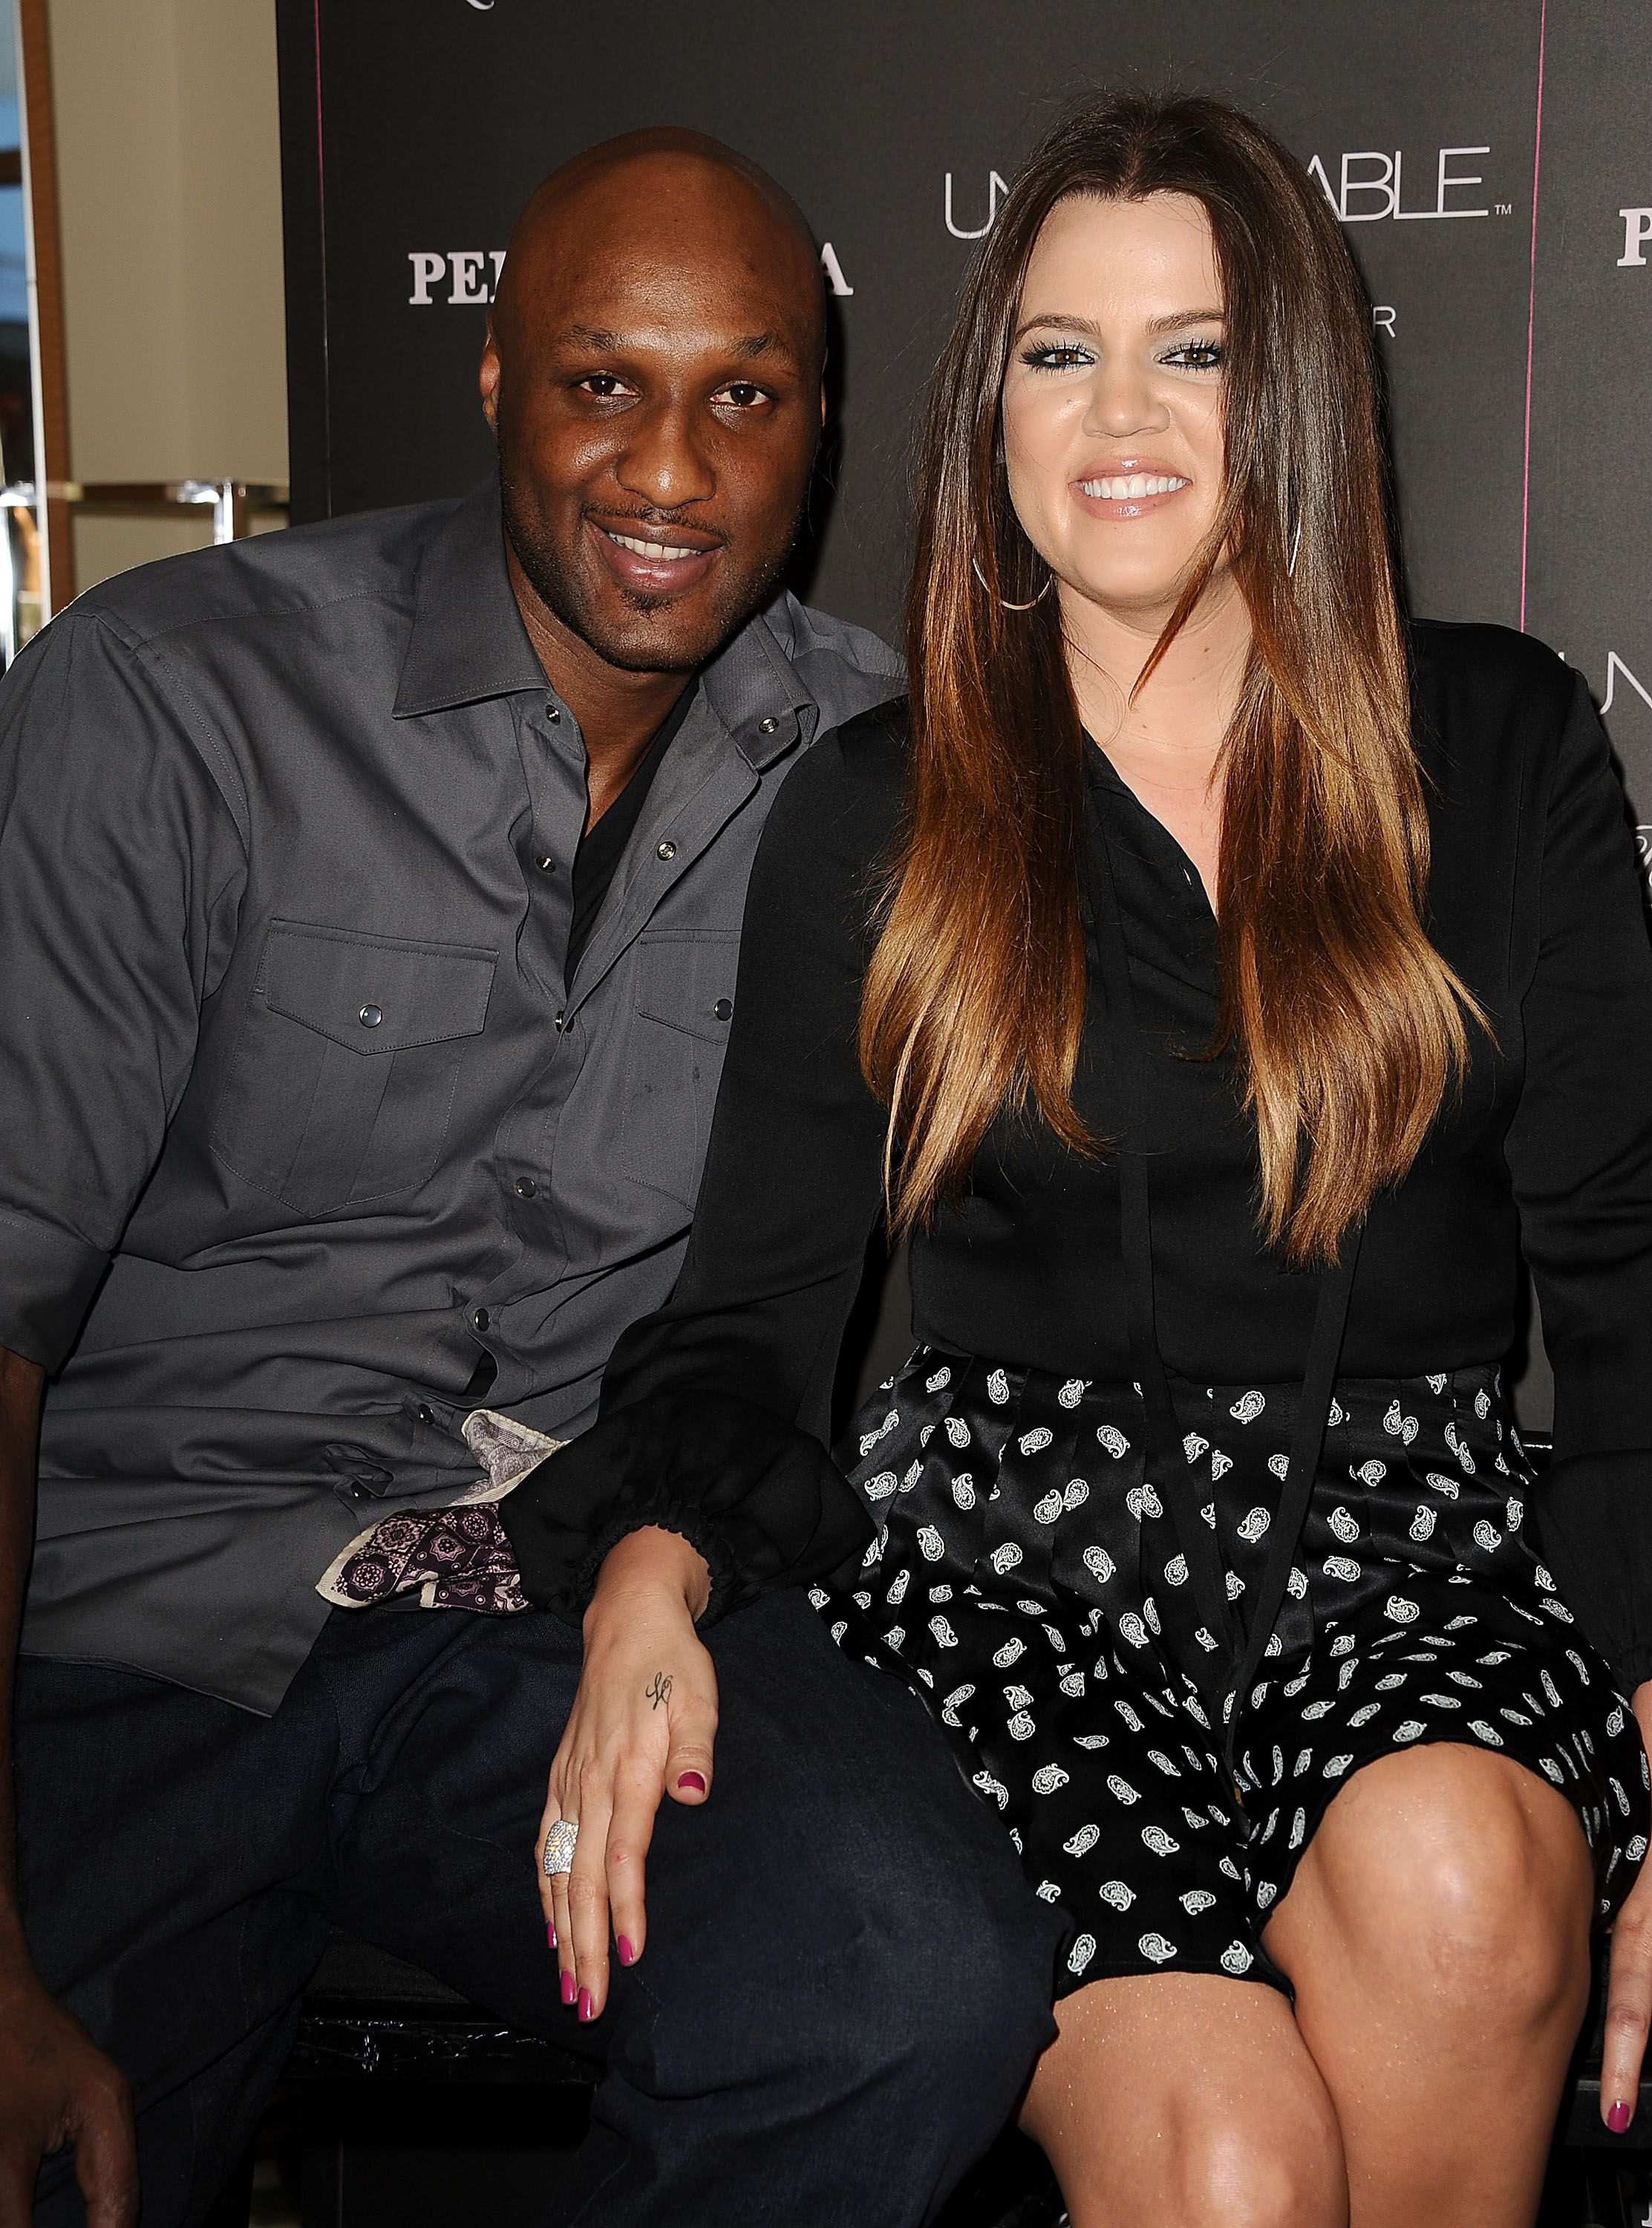 Lamar Odom Opens Up About Cheating on Khloé Kardashian in Memoir